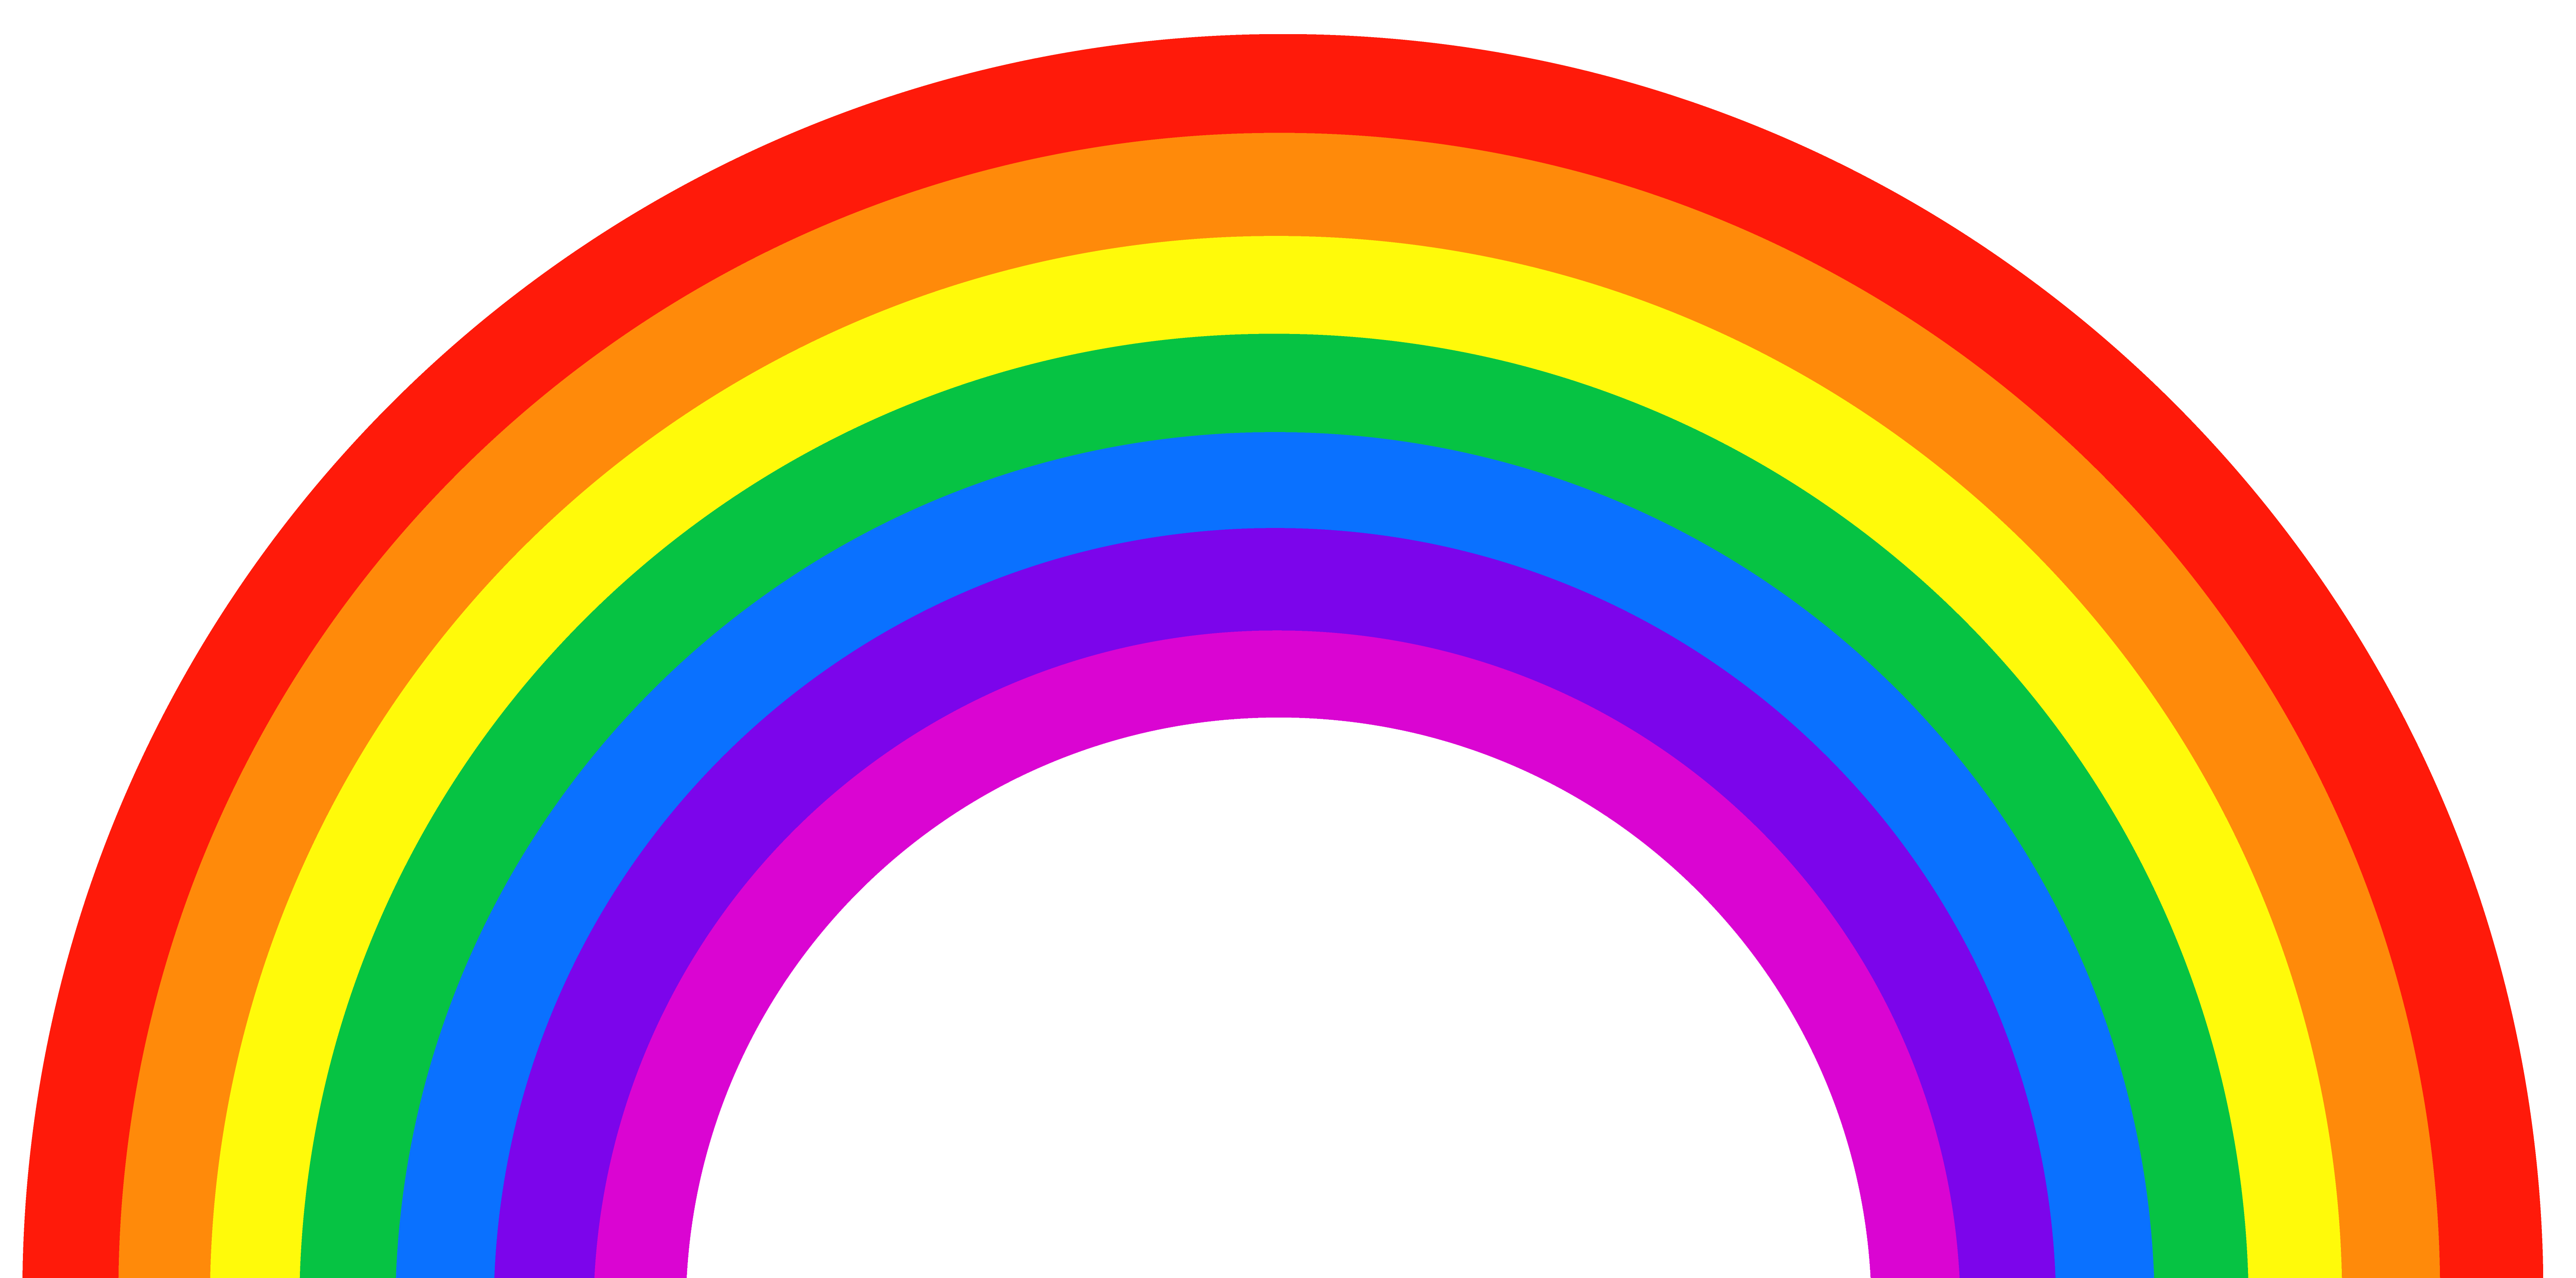 Png picture gallery yopriceville. Streamers clipart rainbow